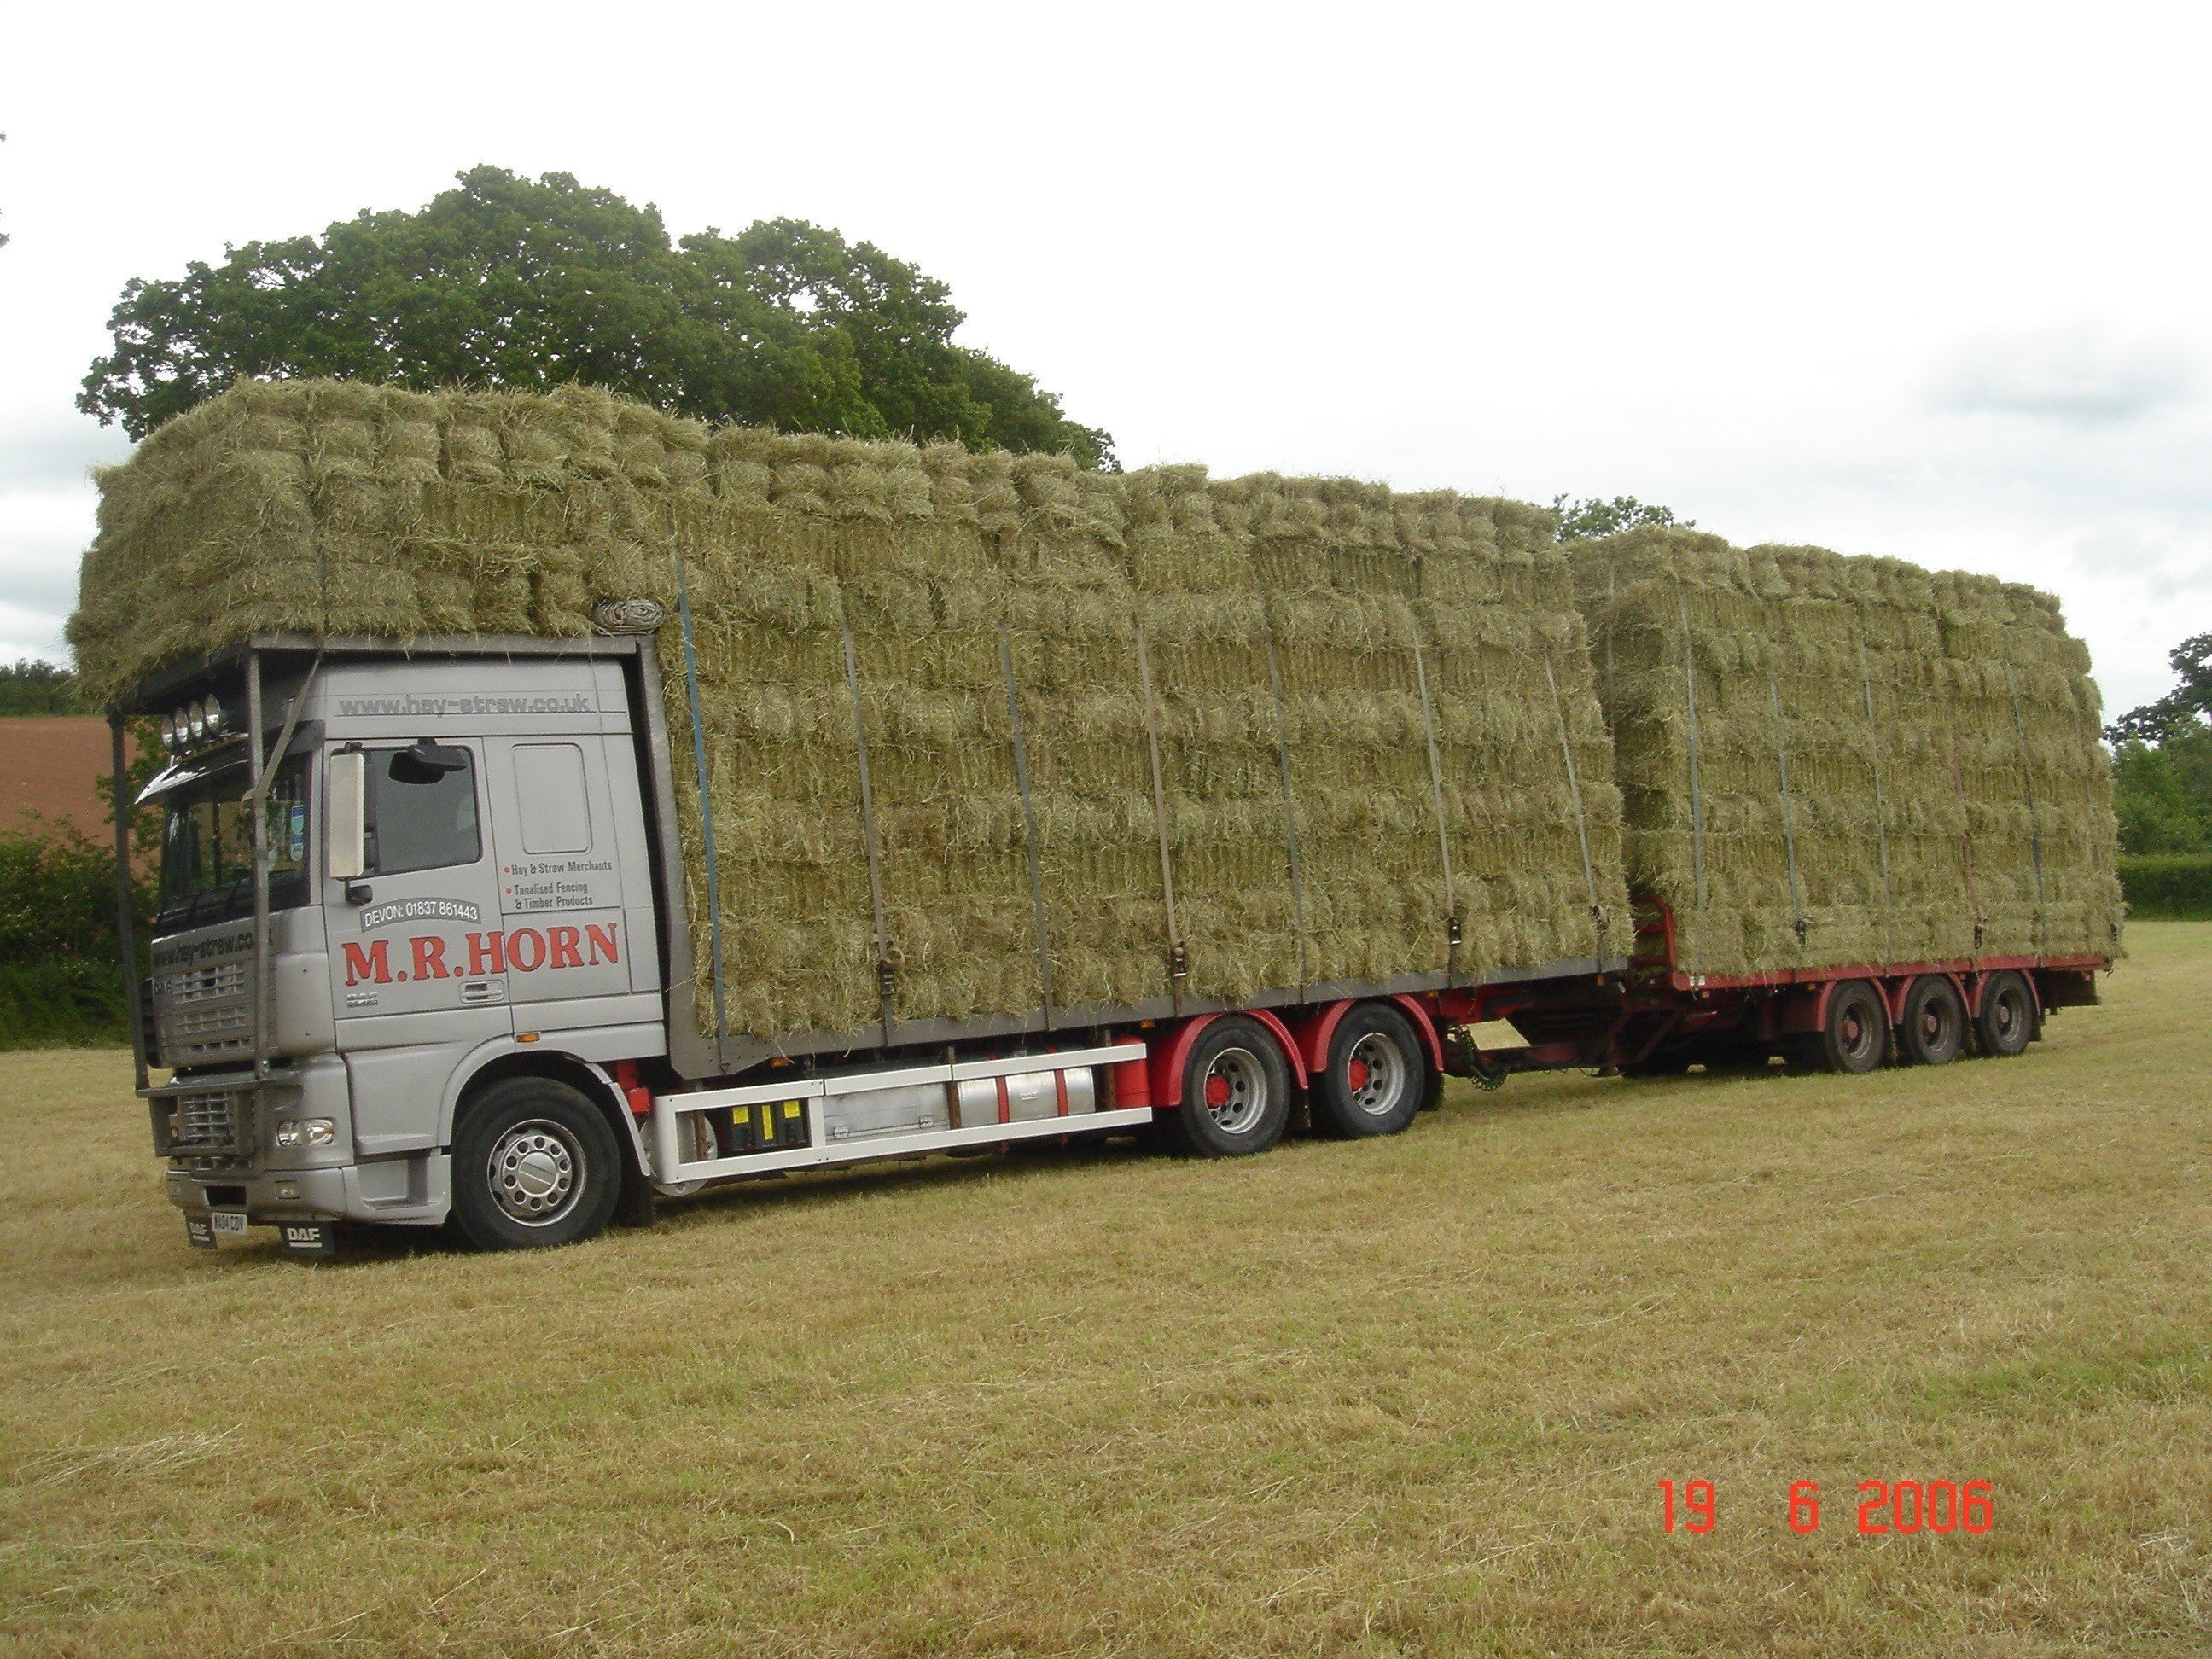 huge truck carrying hay